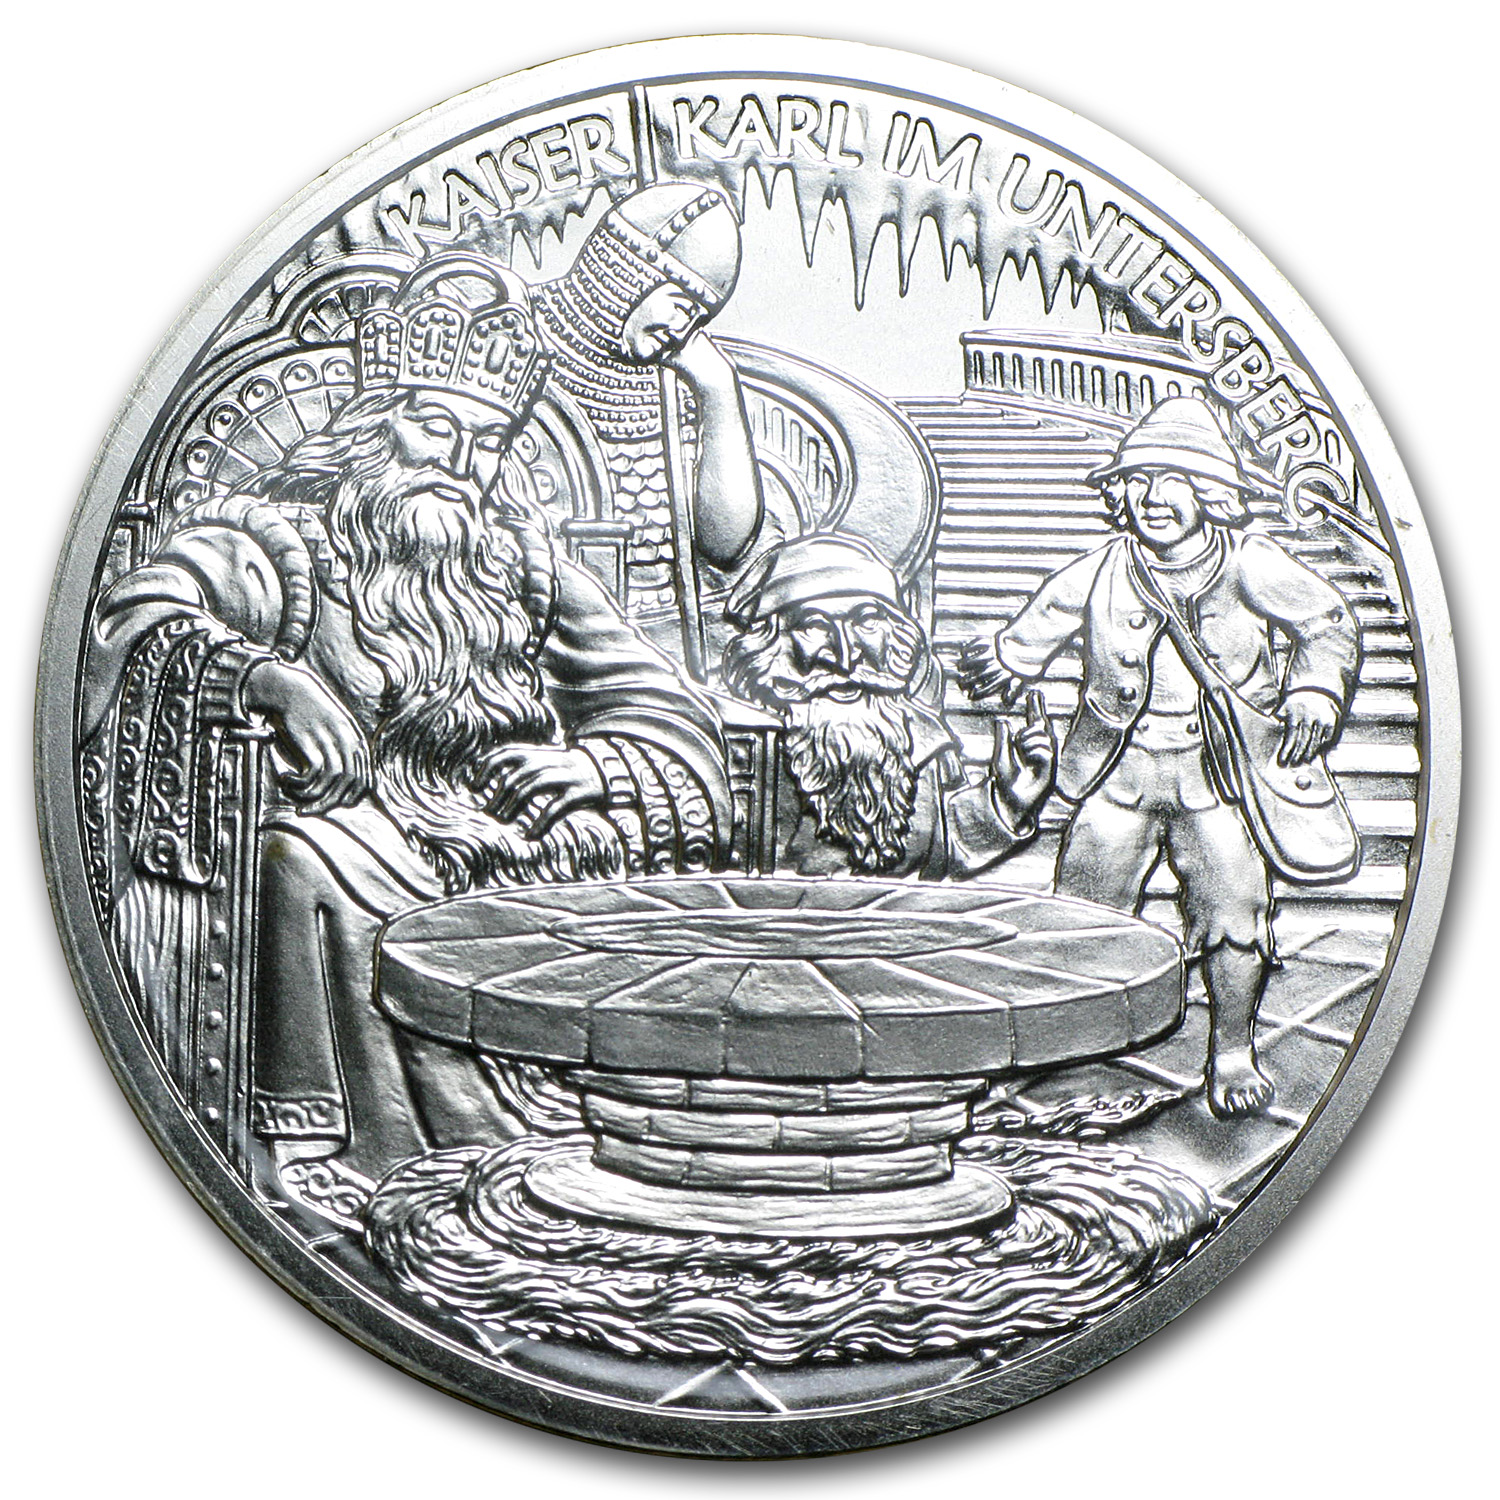 2010 Charlemagne In The Untersberg 10 Euro Silver Coin ASW 0.4758